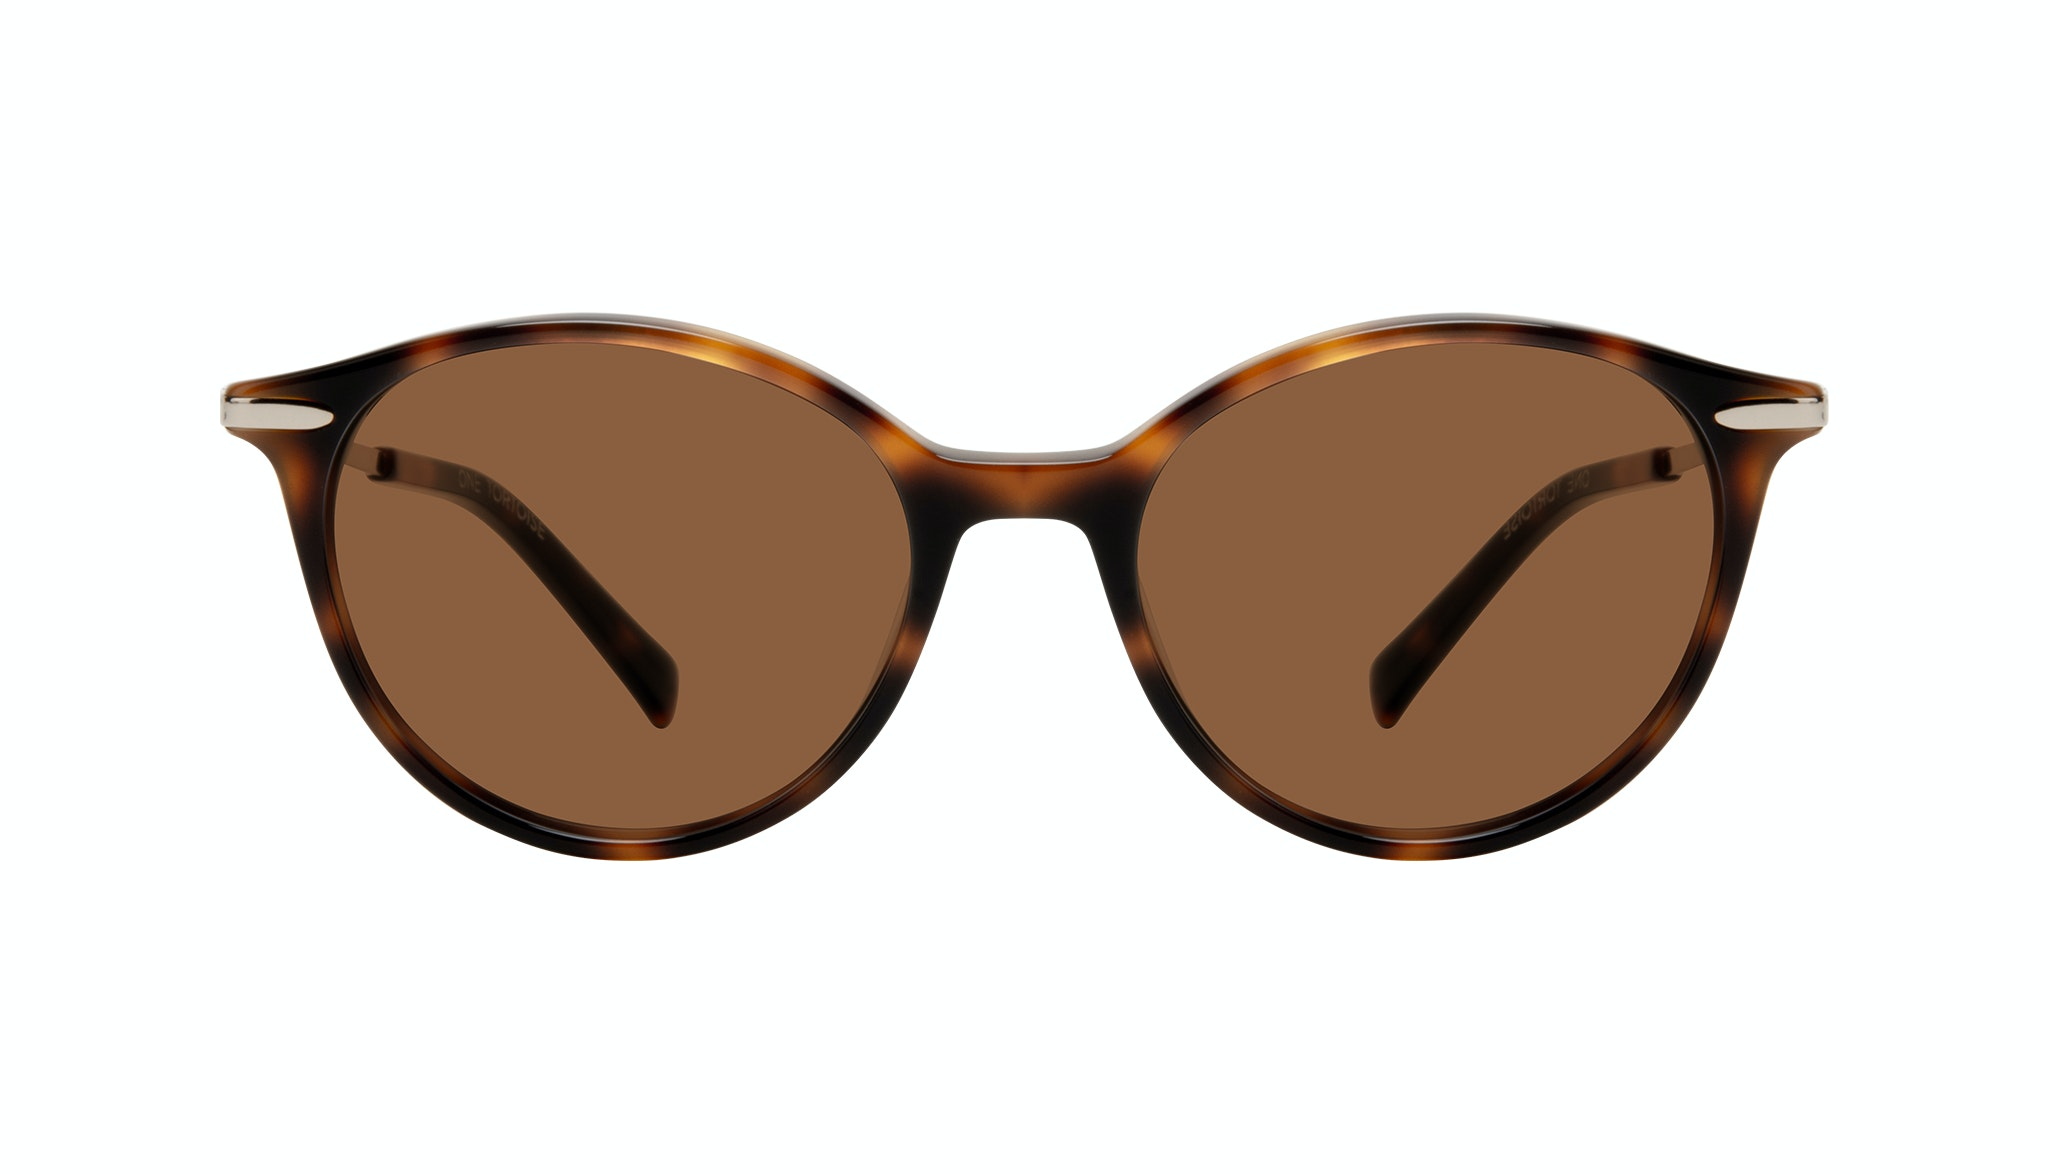 Affordable Fashion Glasses Round Sunglasses Women One Tortoise Front